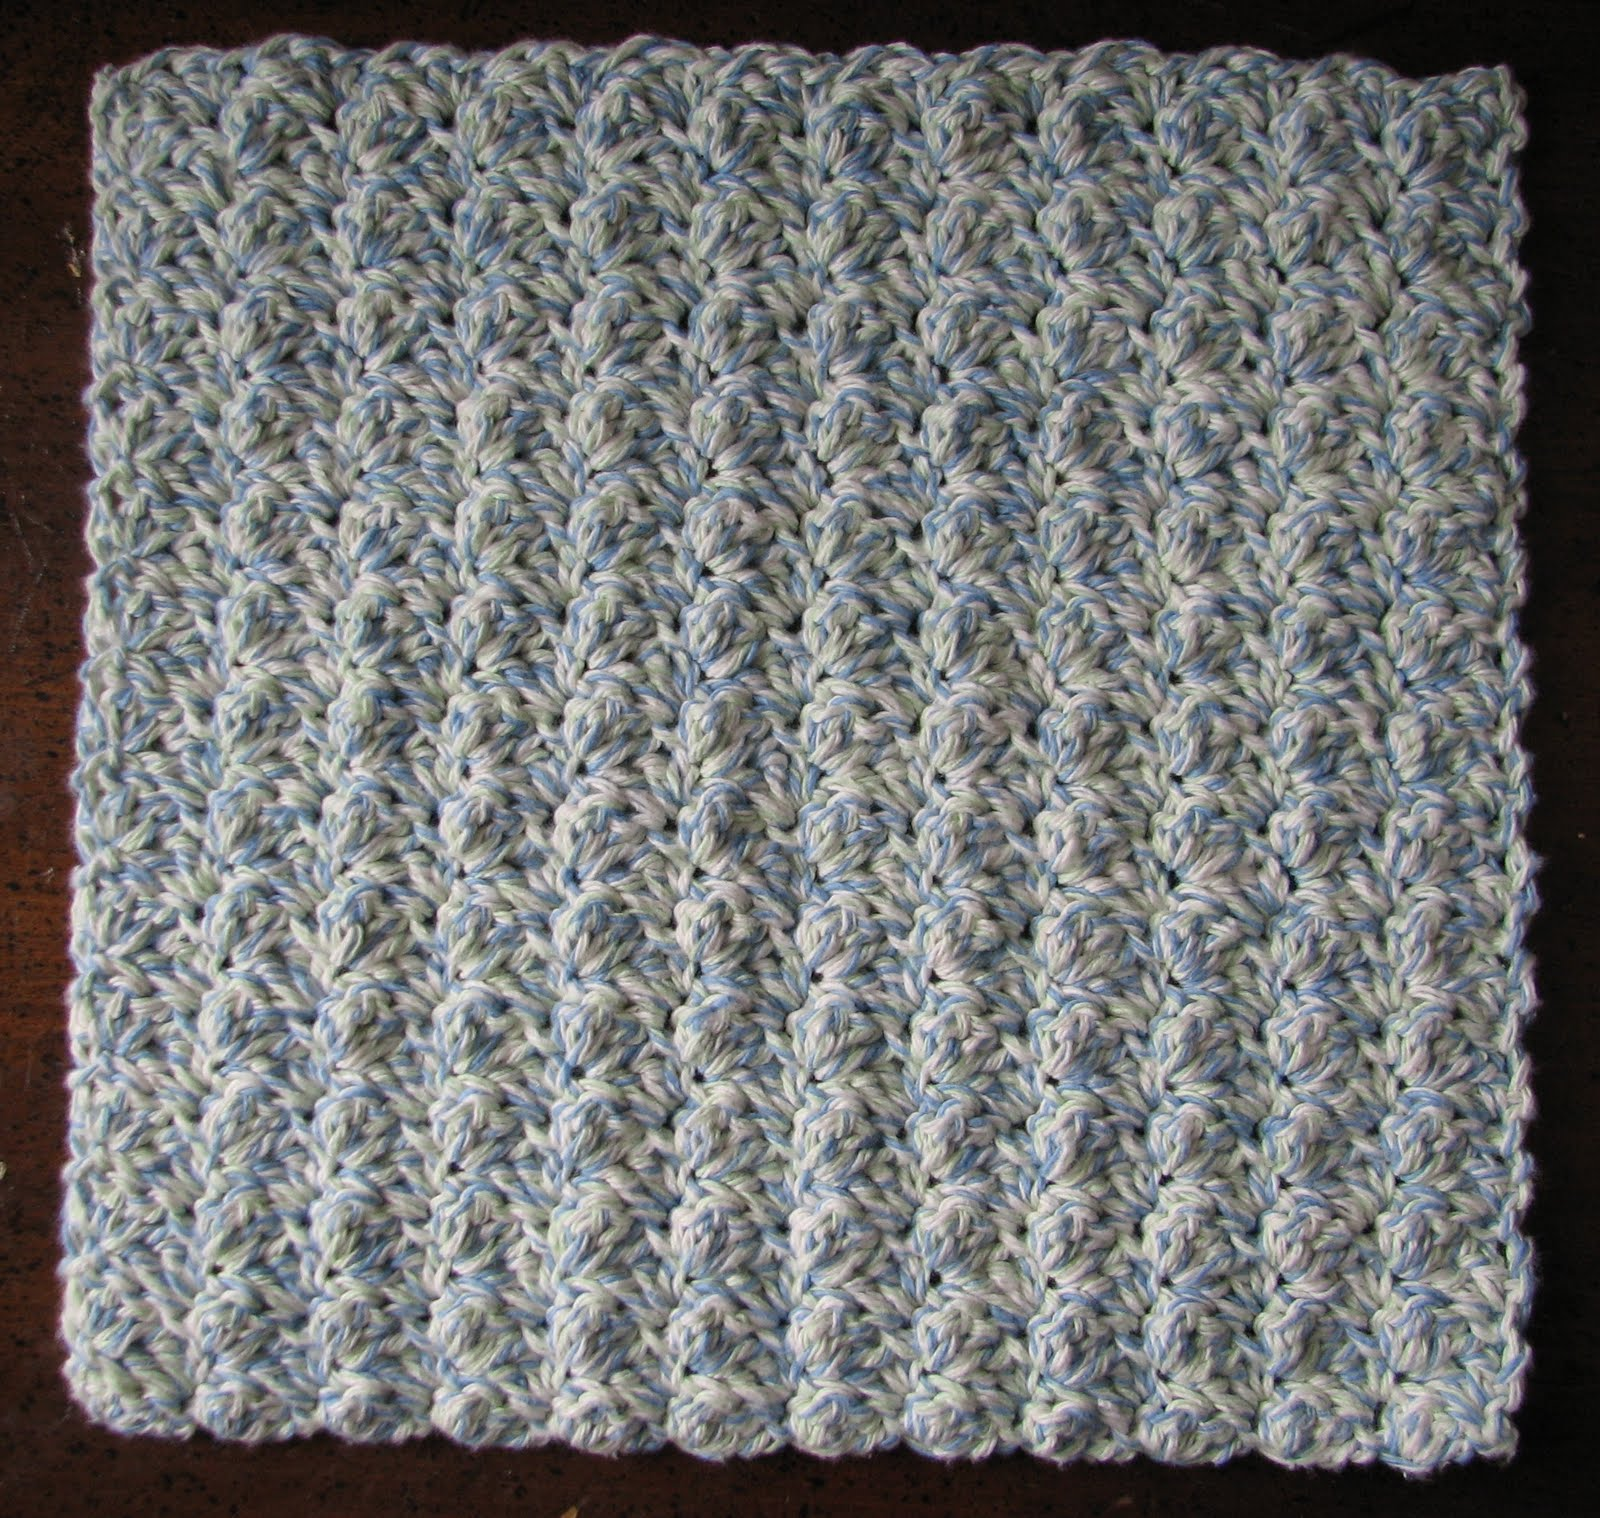 Country Ripple Stitch Dishcloth - free crochet pattern by Ambassador Crochet